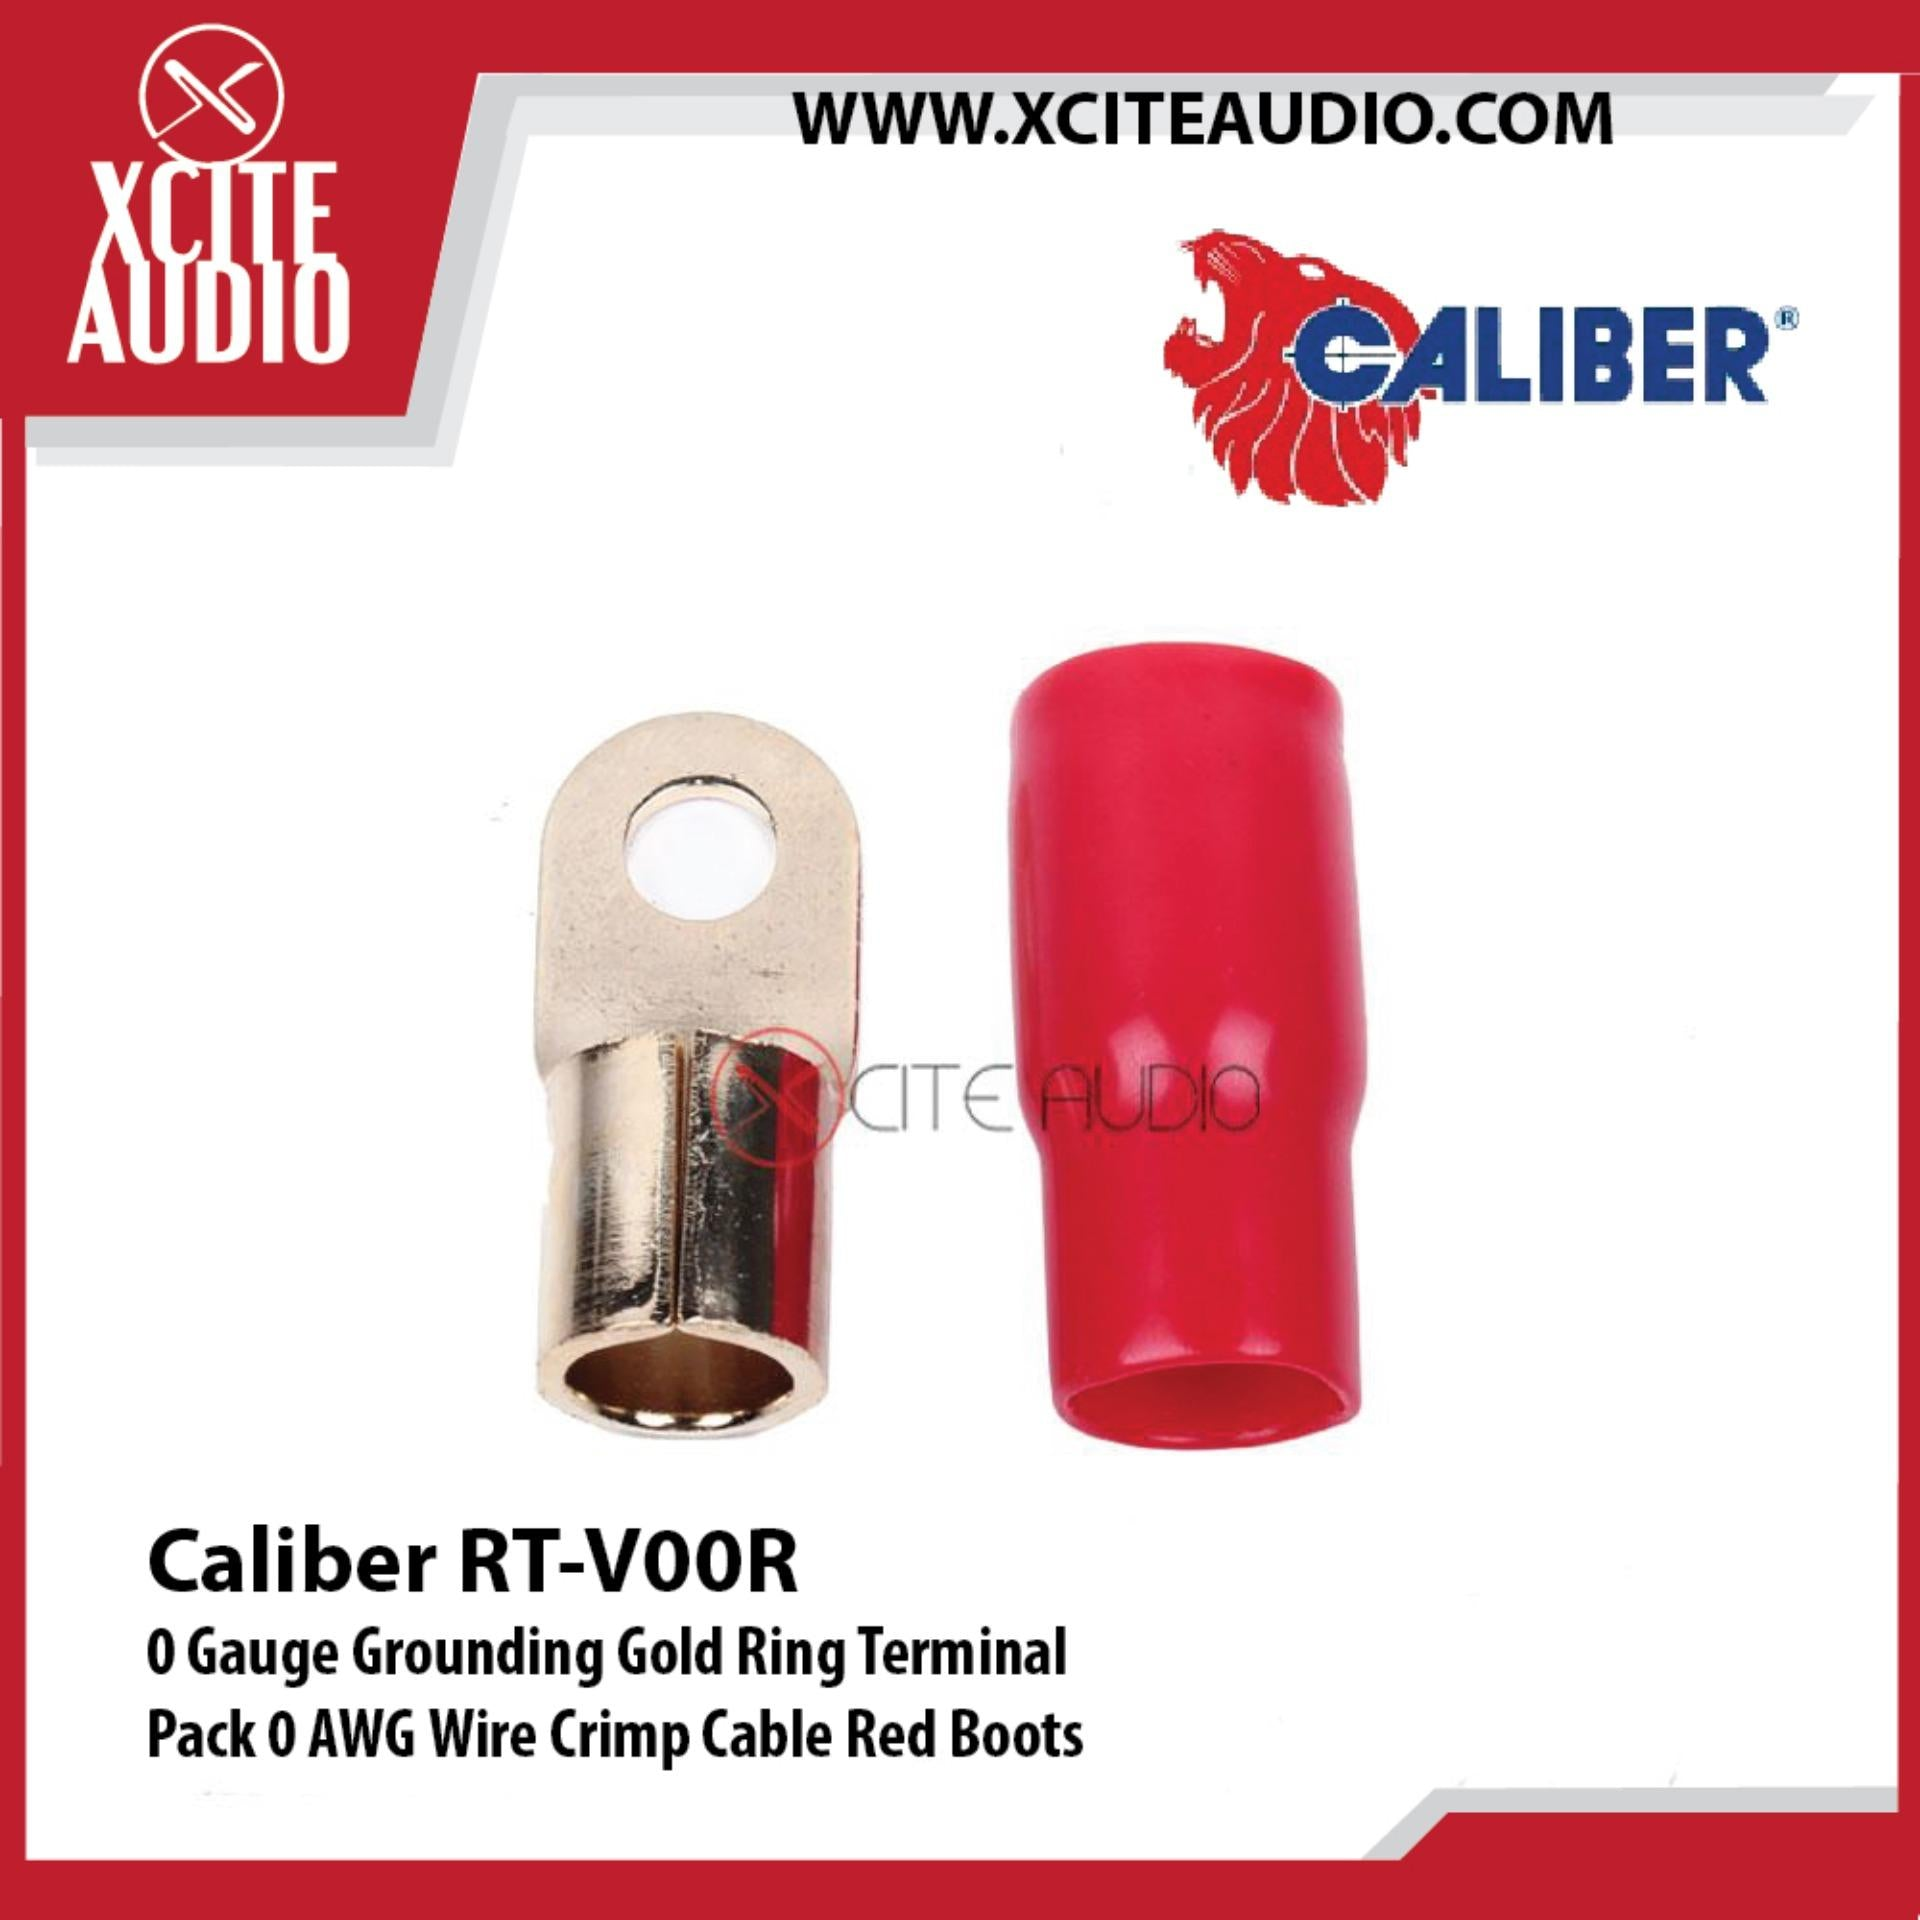 Caliber RT-V00R 0 Gauge Grounding Gold Ring Terminal 0 AWG Wire Crimp Cable Red Boots - Xcite Audio